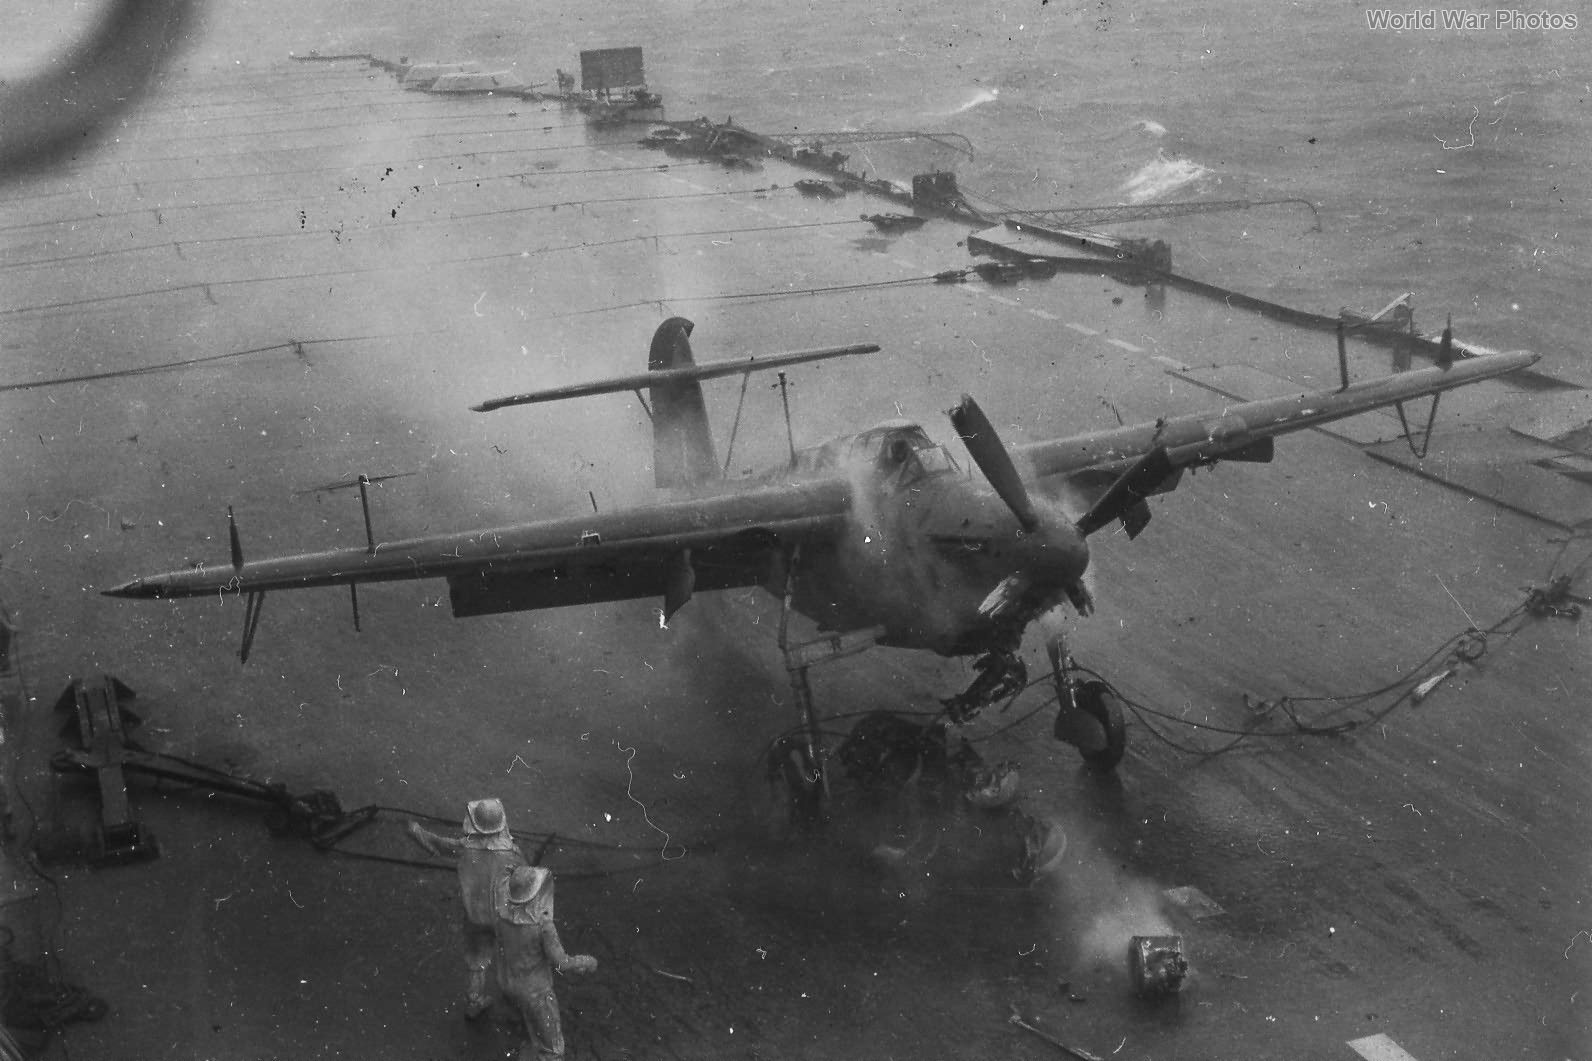 Barracuda crashes on HMS Victorious 19 September 1944